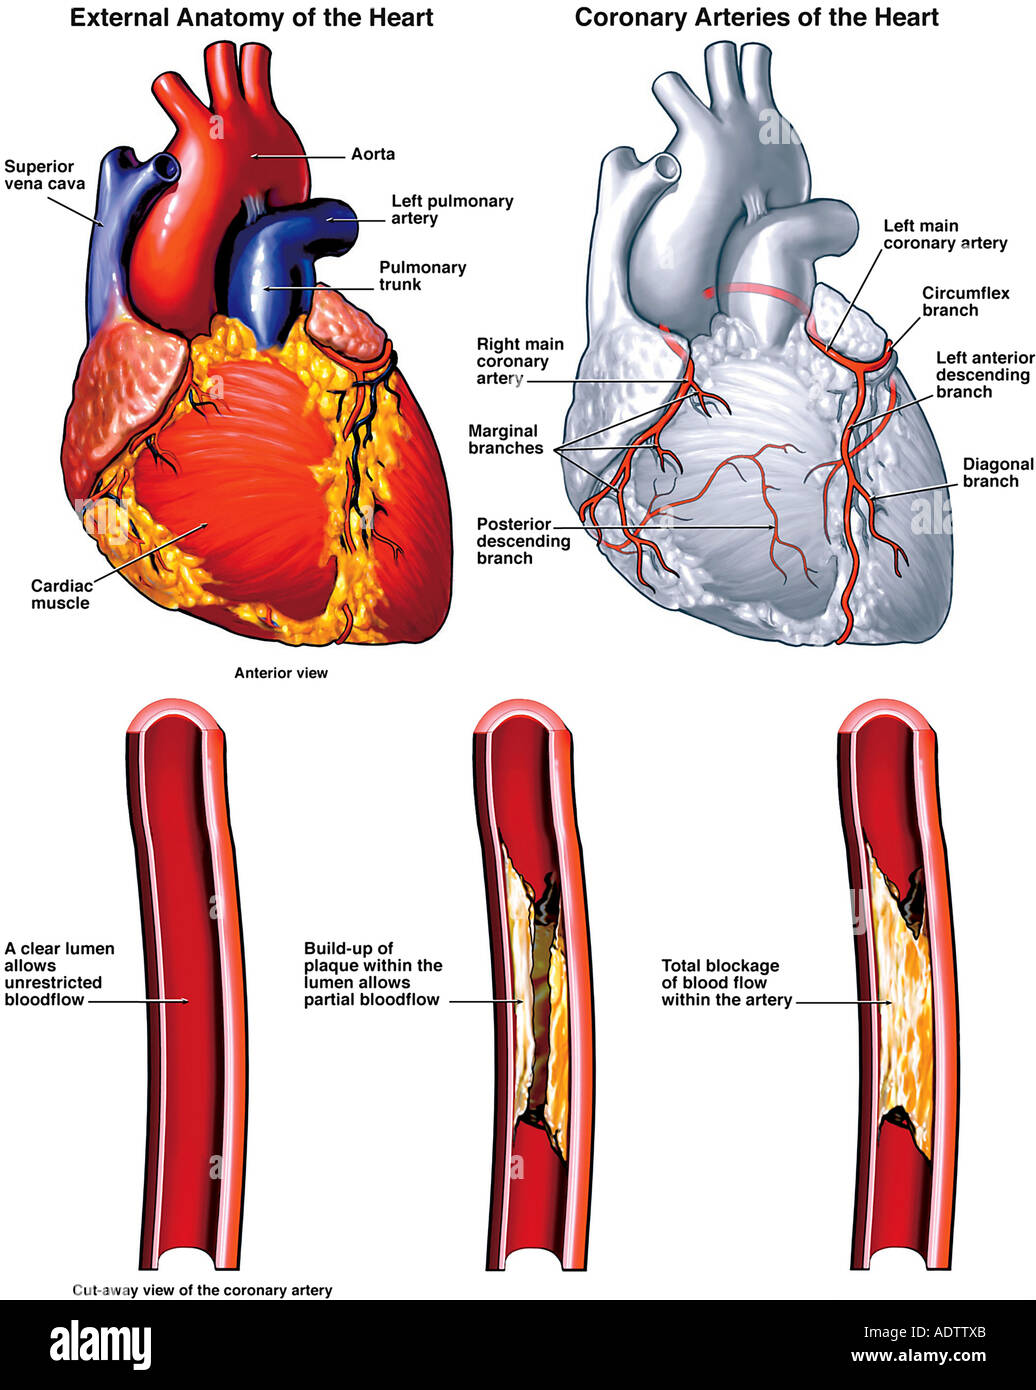 Anatomy of the heart arteries 6119095 - follow4more.info